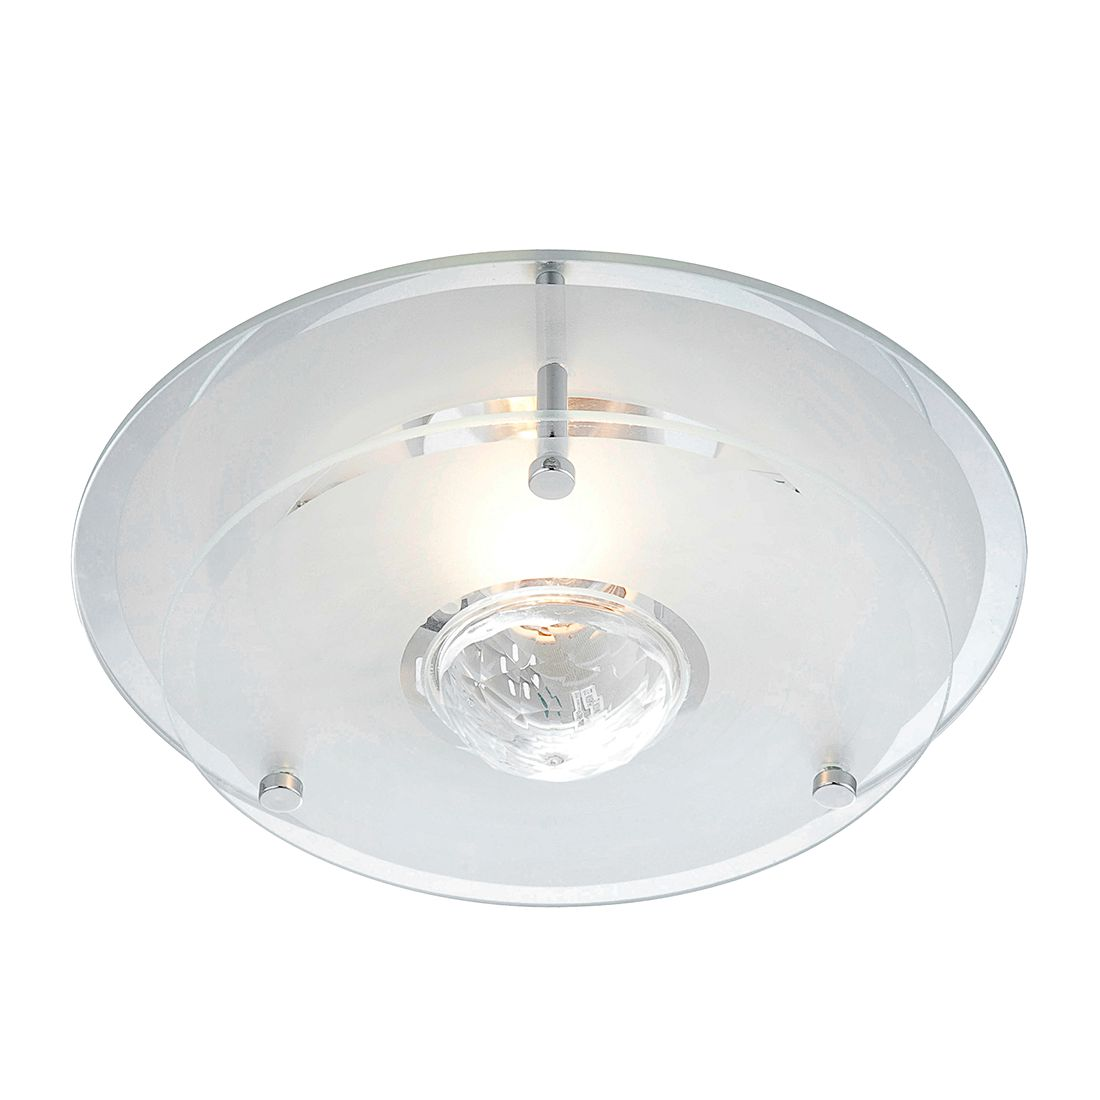 Lampada da soffitto Malaga, Globo Lighting